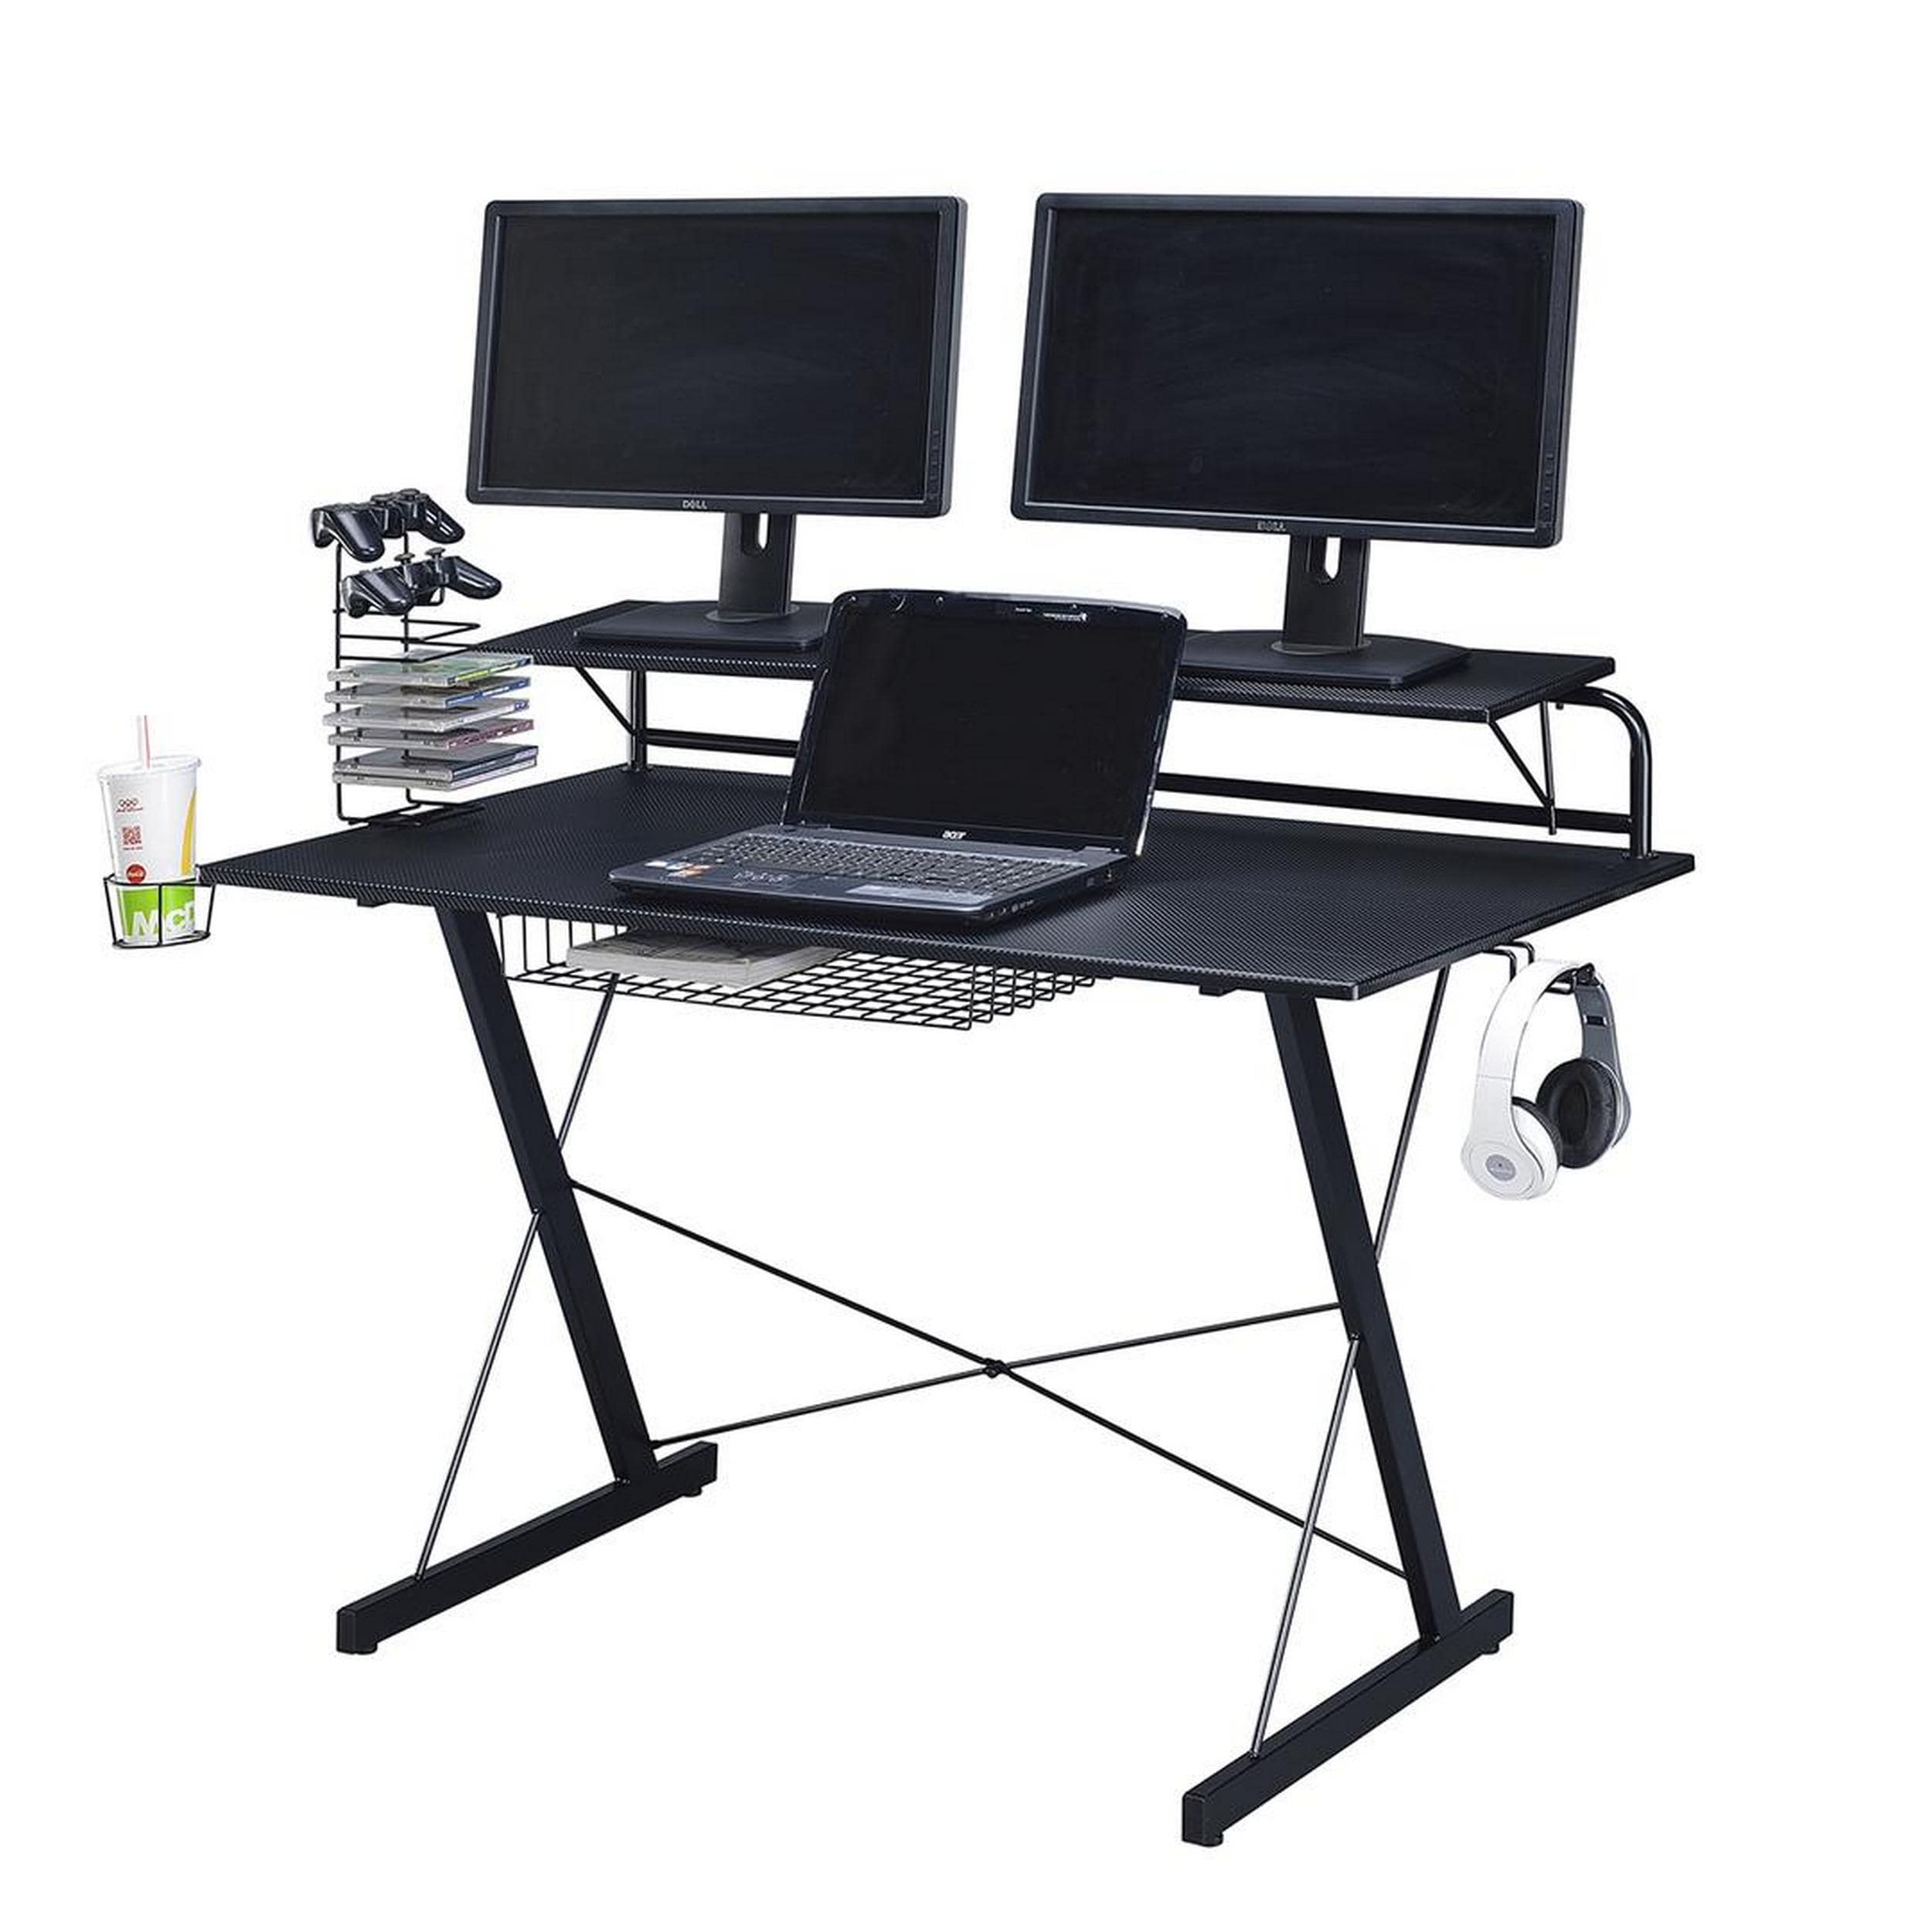 - Shop Gaming And Student Computer Desk Setup With Organizers